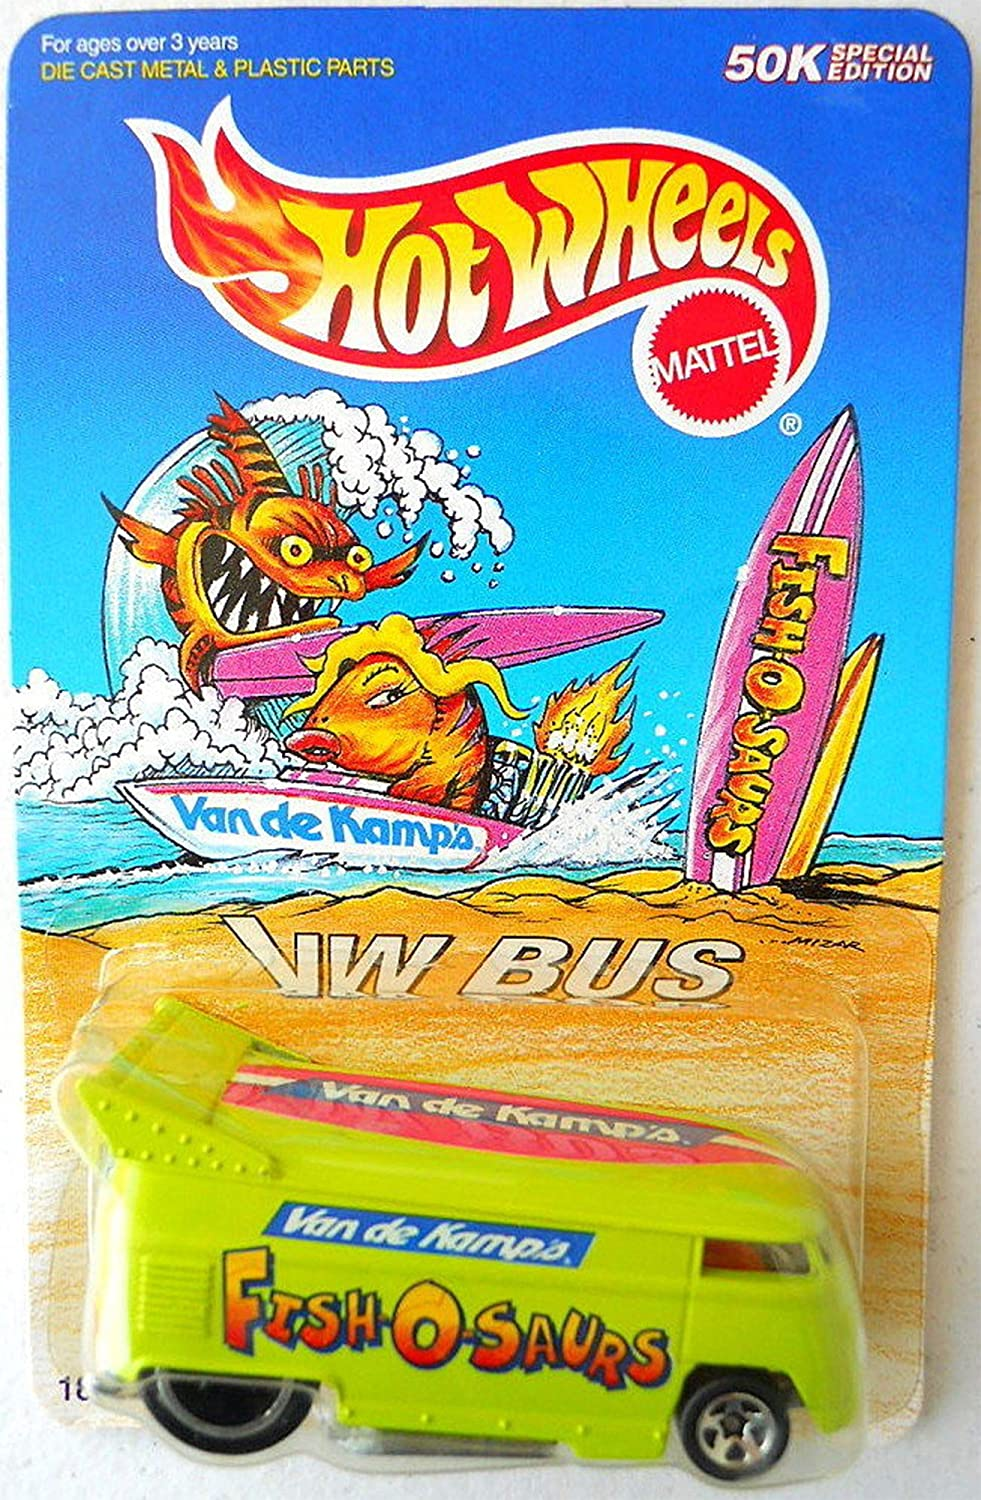 Hot Wheels - 50k Special Edition - Van de Kamp's - Fish O Saurs - Volkswagen (VW) Bus - 1 64 Scale Collector Vehicle - Light Green Body color by Hot Wheels